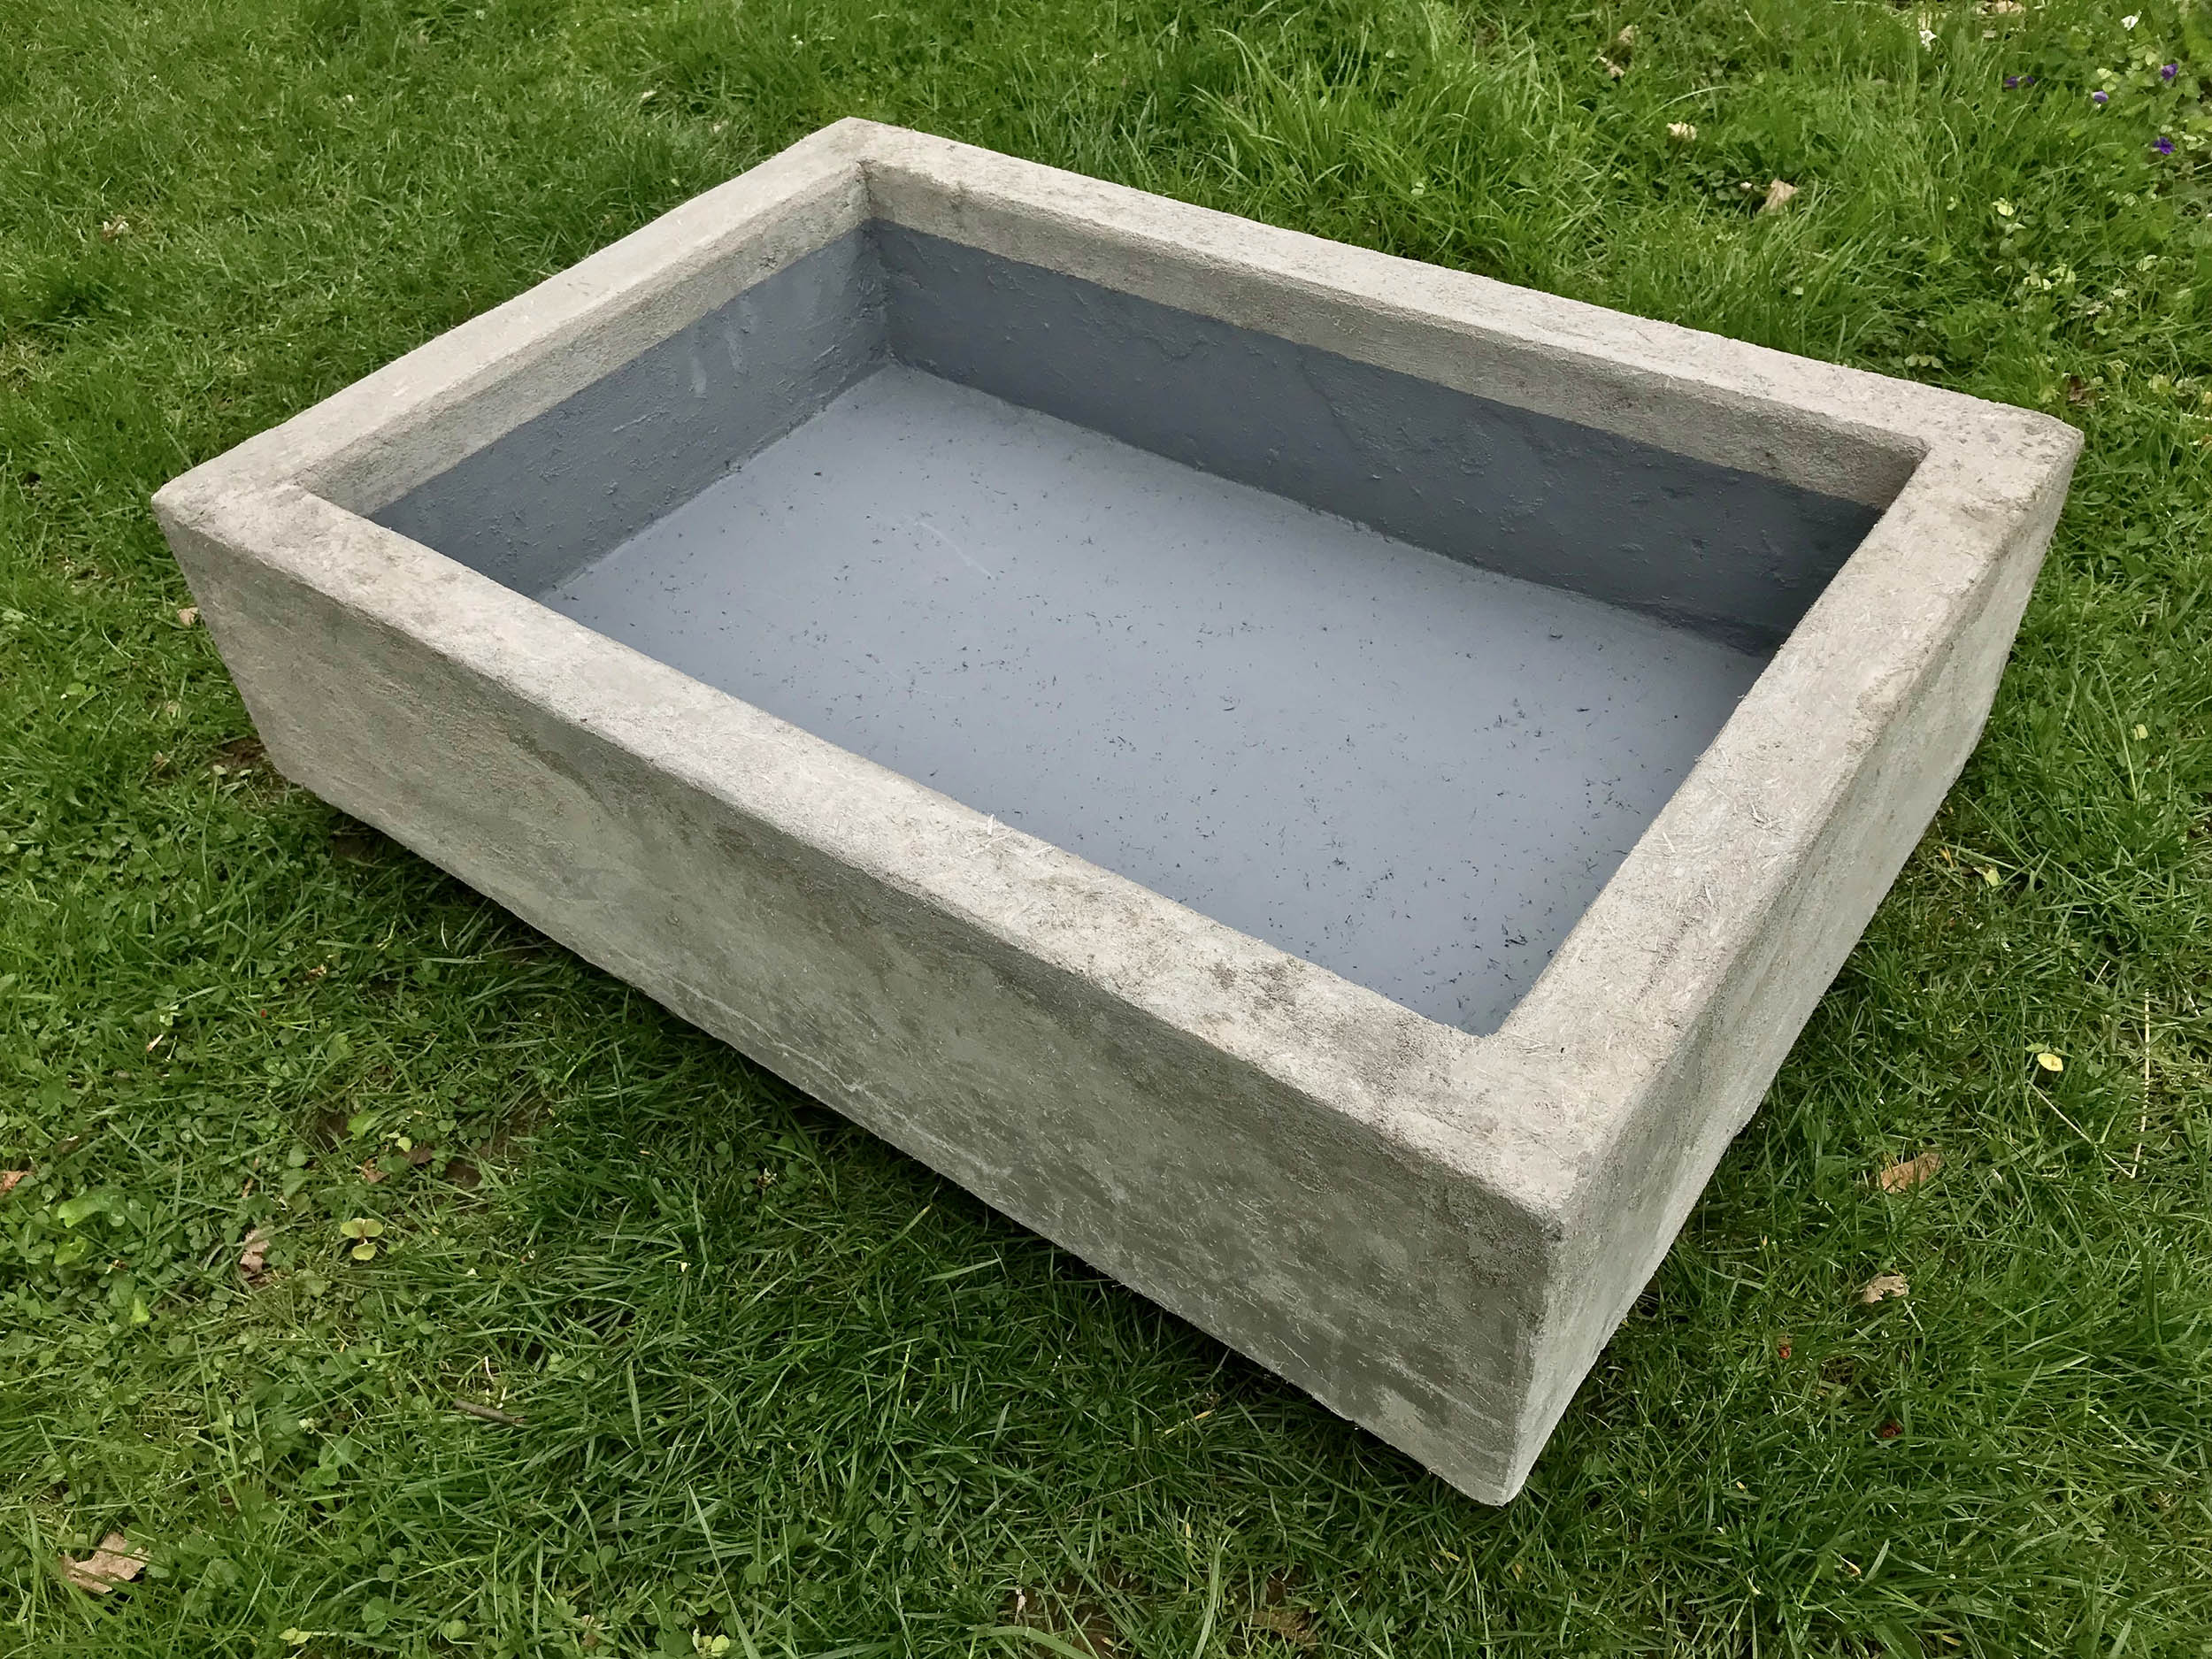 Build A Lightweight Waterproof Concrete Basin For Ponds And